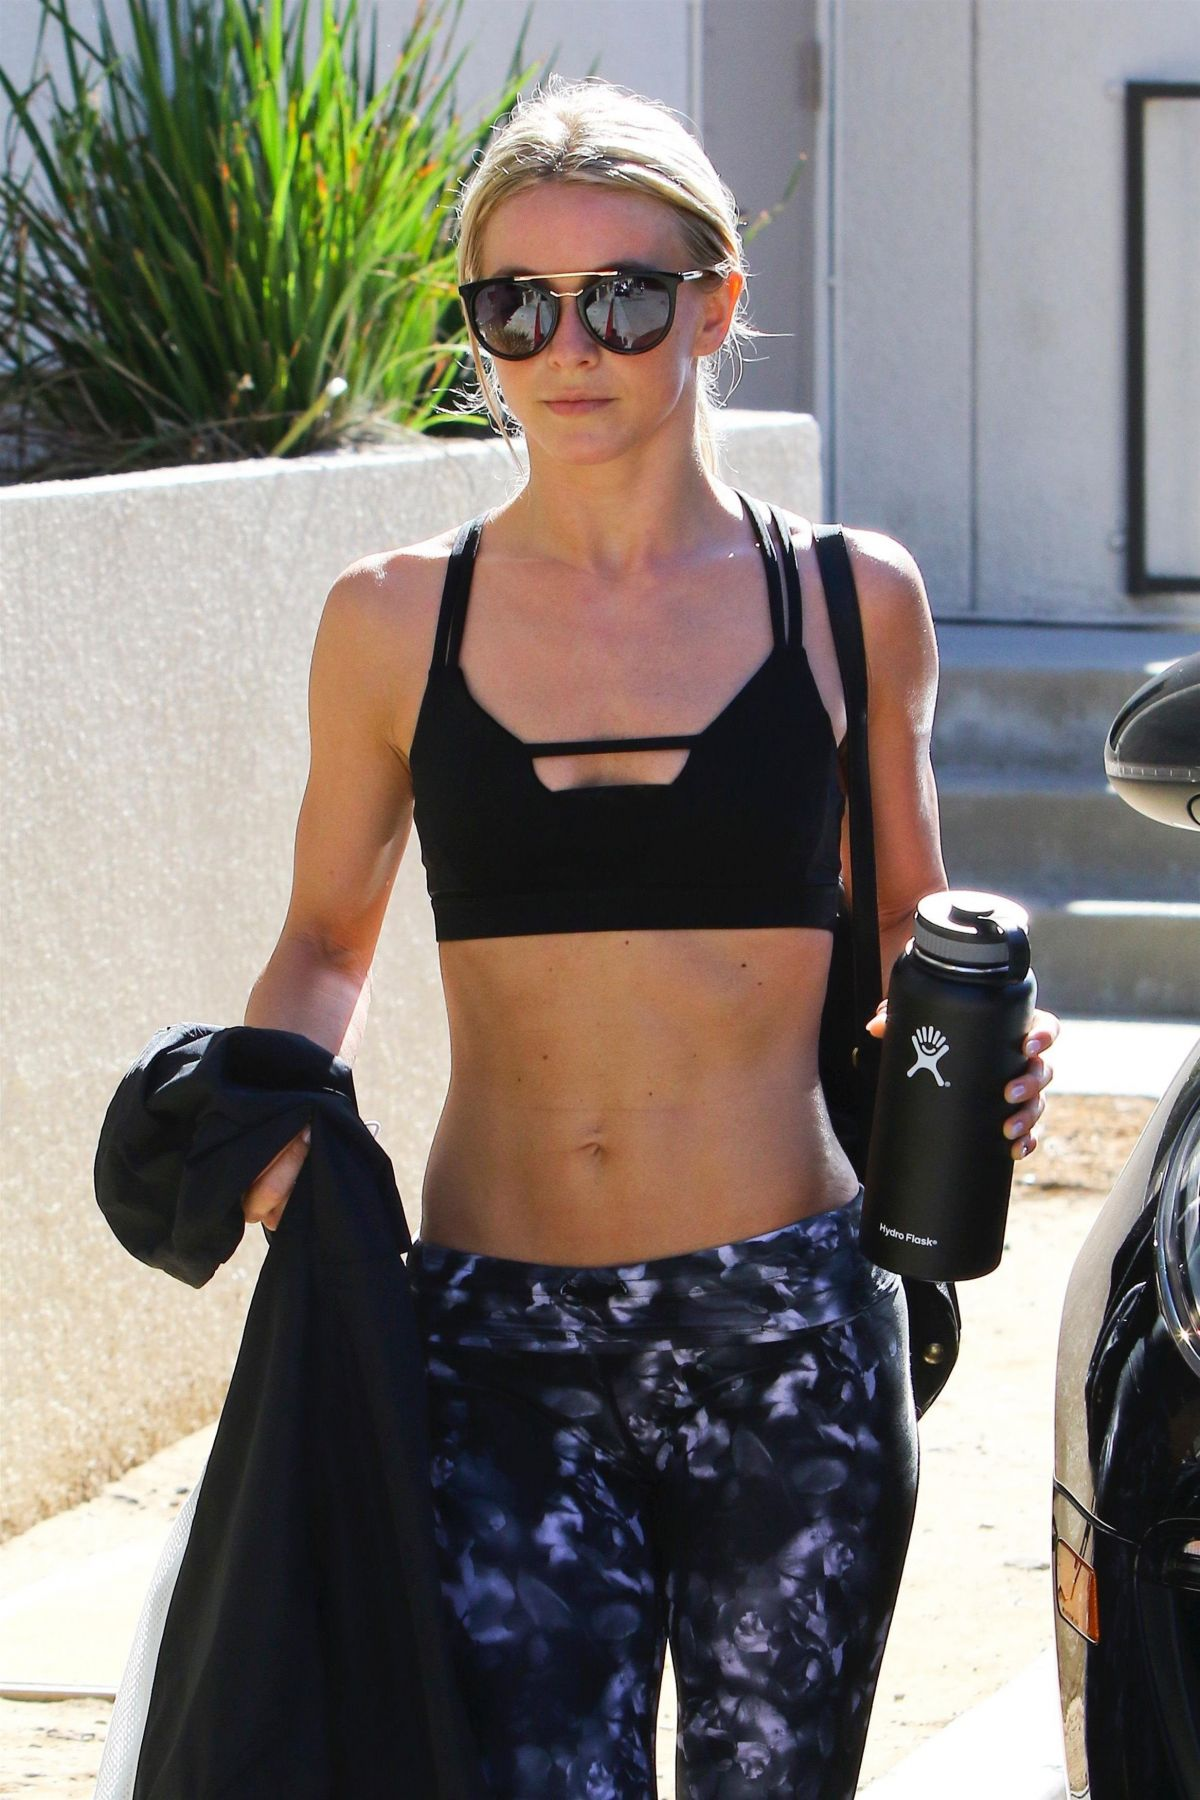 Discussion on this topic: Nude photos of Tallulah Willis, julianne-hough-in-workout-gear-studio-city/